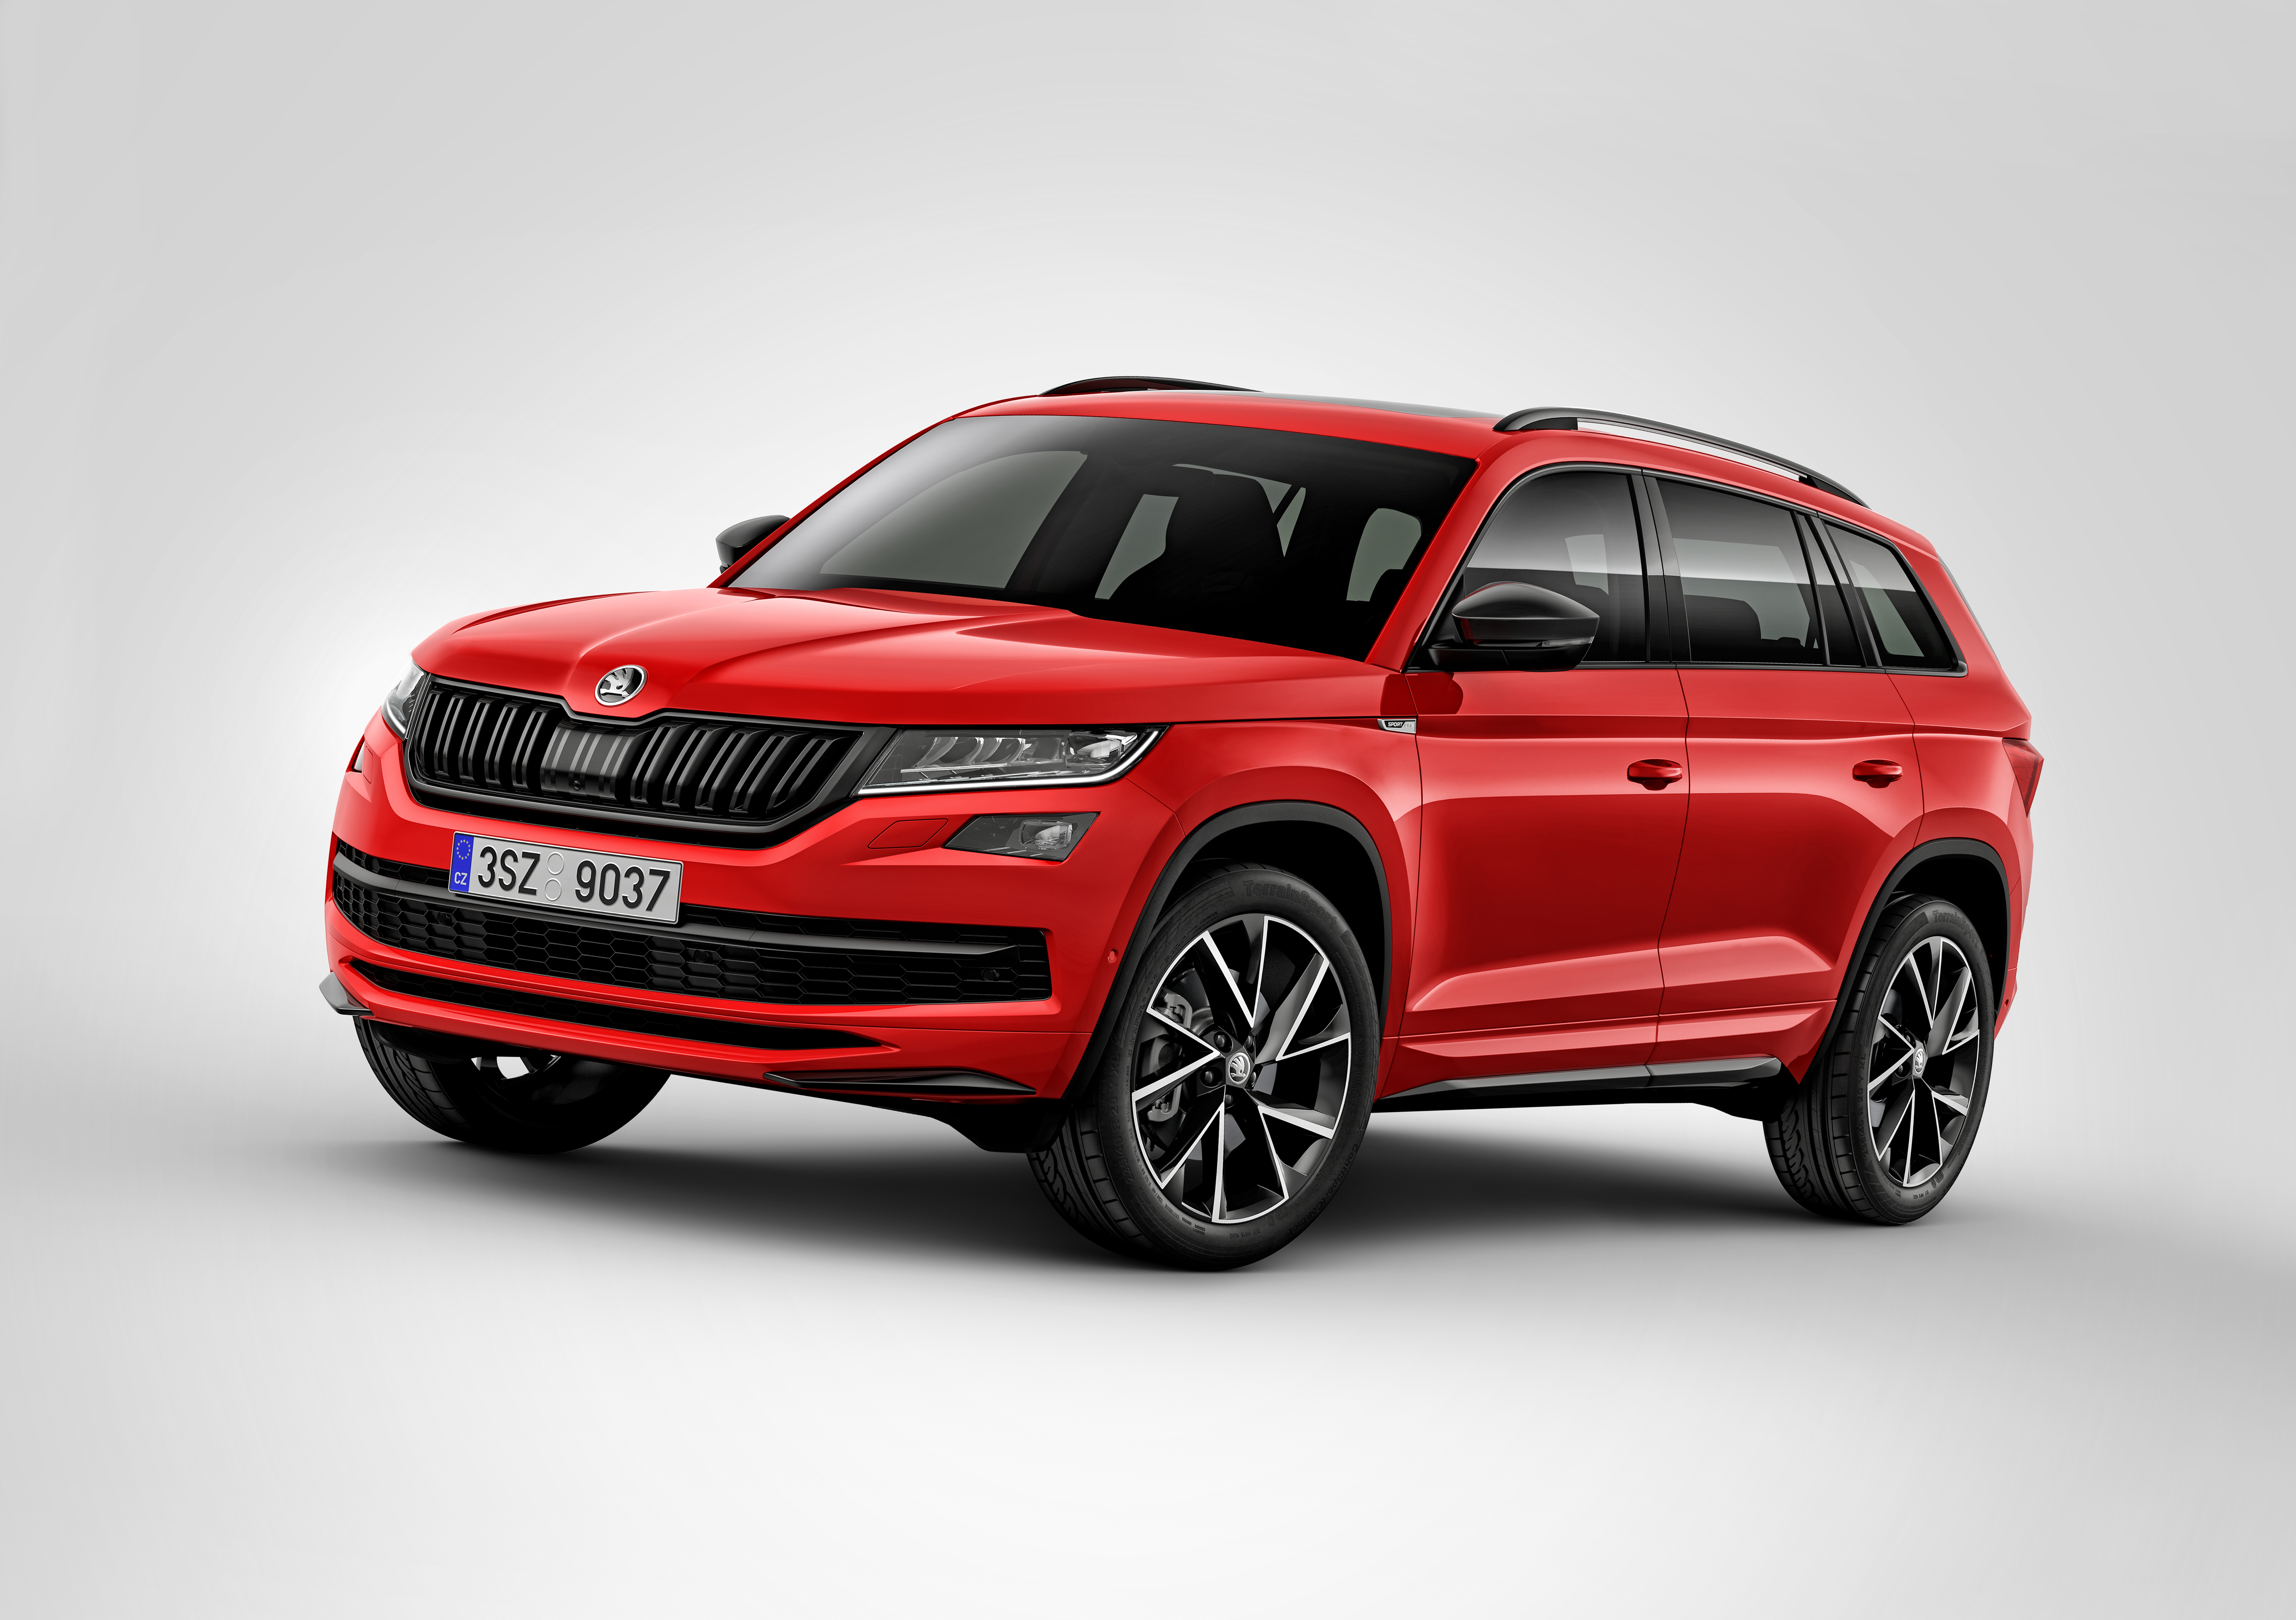 Skoda Kodiaq Sportline Sporty More Dynamic Appearance For Those Who Want To Stand Out Skoda Storyboard